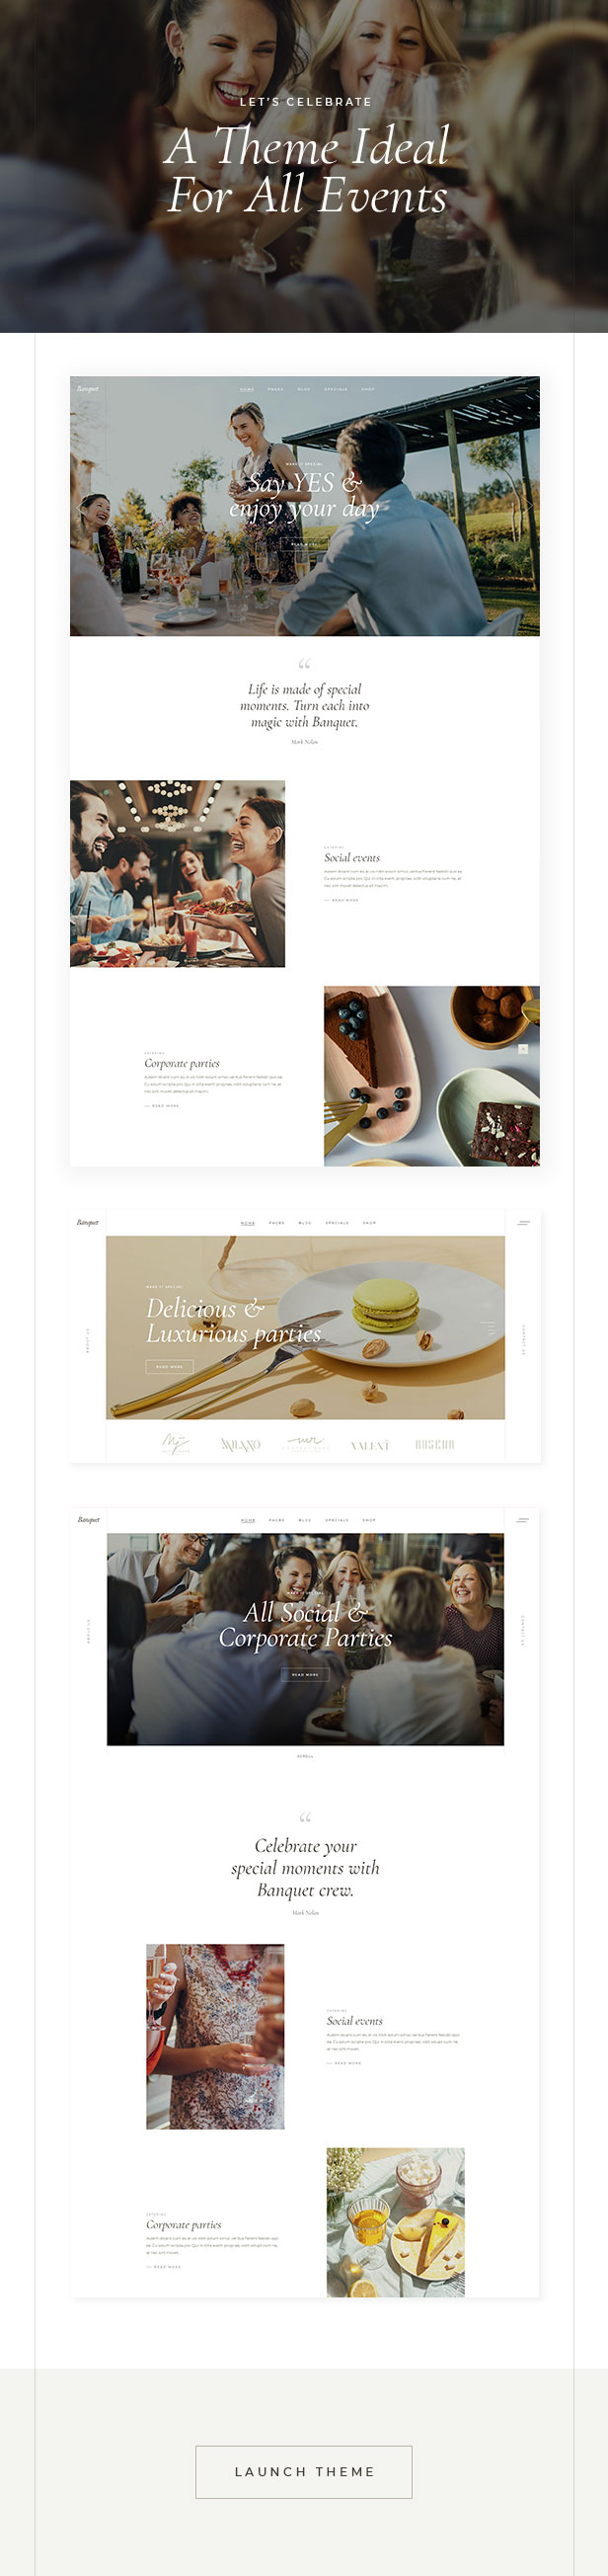 Banquet - Catering and Event Planning Theme - 2